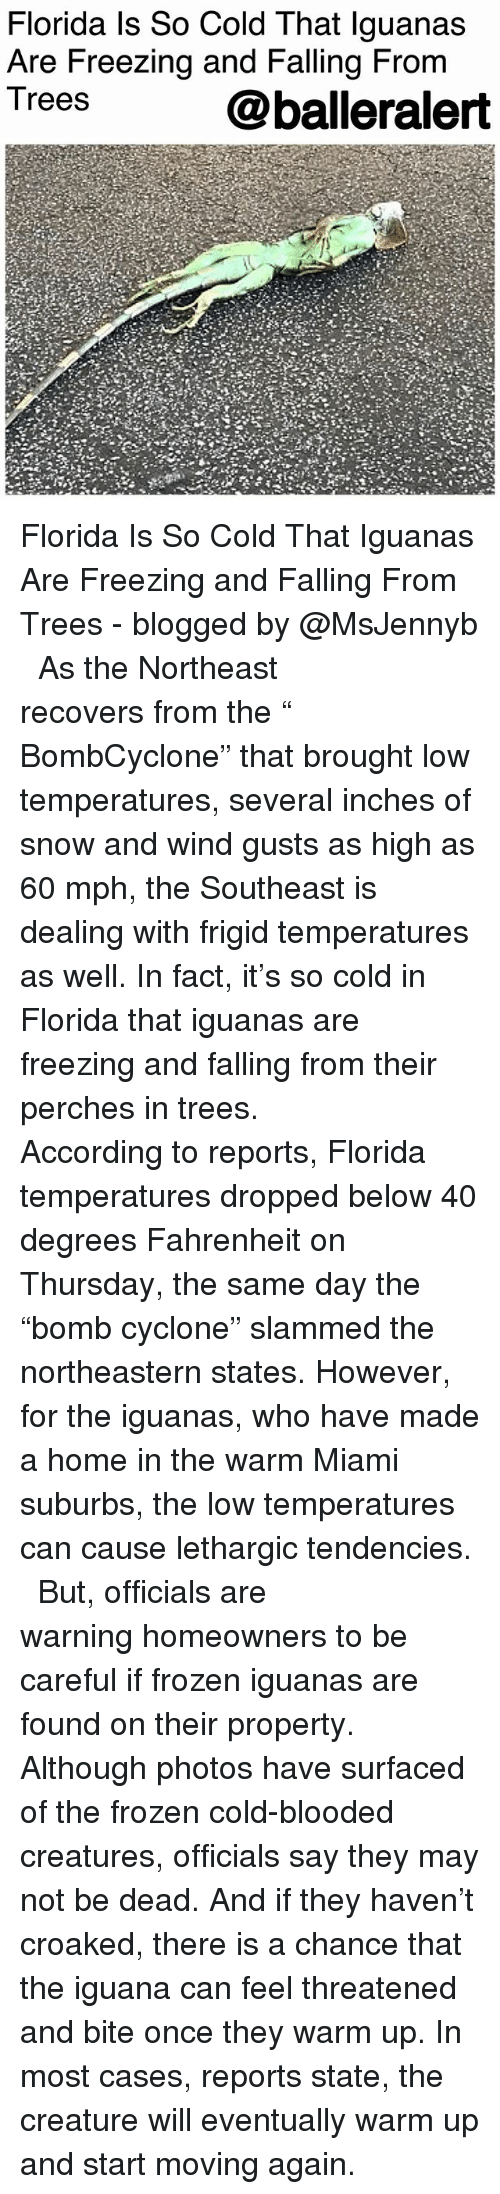 """Frozen, Memes, and Florida: Florida ls So Cold That lguanas  Are Freezing and Falling From  Trees  @balleralert Florida Is So Cold That Iguanas Are Freezing and Falling From Trees - blogged by @MsJennyb ⠀⠀⠀⠀⠀⠀⠀ ⠀⠀⠀⠀⠀⠀⠀ As the Northeast recovers from the """" BombCyclone"""" that brought low temperatures, several inches of snow and wind gusts as high as 60 mph, the Southeast is dealing with frigid temperatures as well. In fact, it's so cold in Florida that iguanas are freezing and falling from their perches in trees. ⠀⠀⠀⠀⠀⠀⠀ ⠀⠀⠀⠀⠀⠀⠀ According to reports, Florida temperatures dropped below 40 degrees Fahrenheit on Thursday, the same day the """"bomb cyclone"""" slammed the northeastern states. However, for the iguanas, who have made a home in the warm Miami suburbs, the low temperatures can cause lethargic tendencies. ⠀⠀⠀⠀⠀⠀⠀ ⠀⠀⠀⠀⠀⠀⠀ But, officials are warning homeowners to be careful if frozen iguanas are found on their property. Although photos have surfaced of the frozen cold-blooded creatures, officials say they may not be dead. And if they haven't croaked, there is a chance that the iguana can feel threatened and bite once they warm up. In most cases, reports state, the creature will eventually warm up and start moving again."""